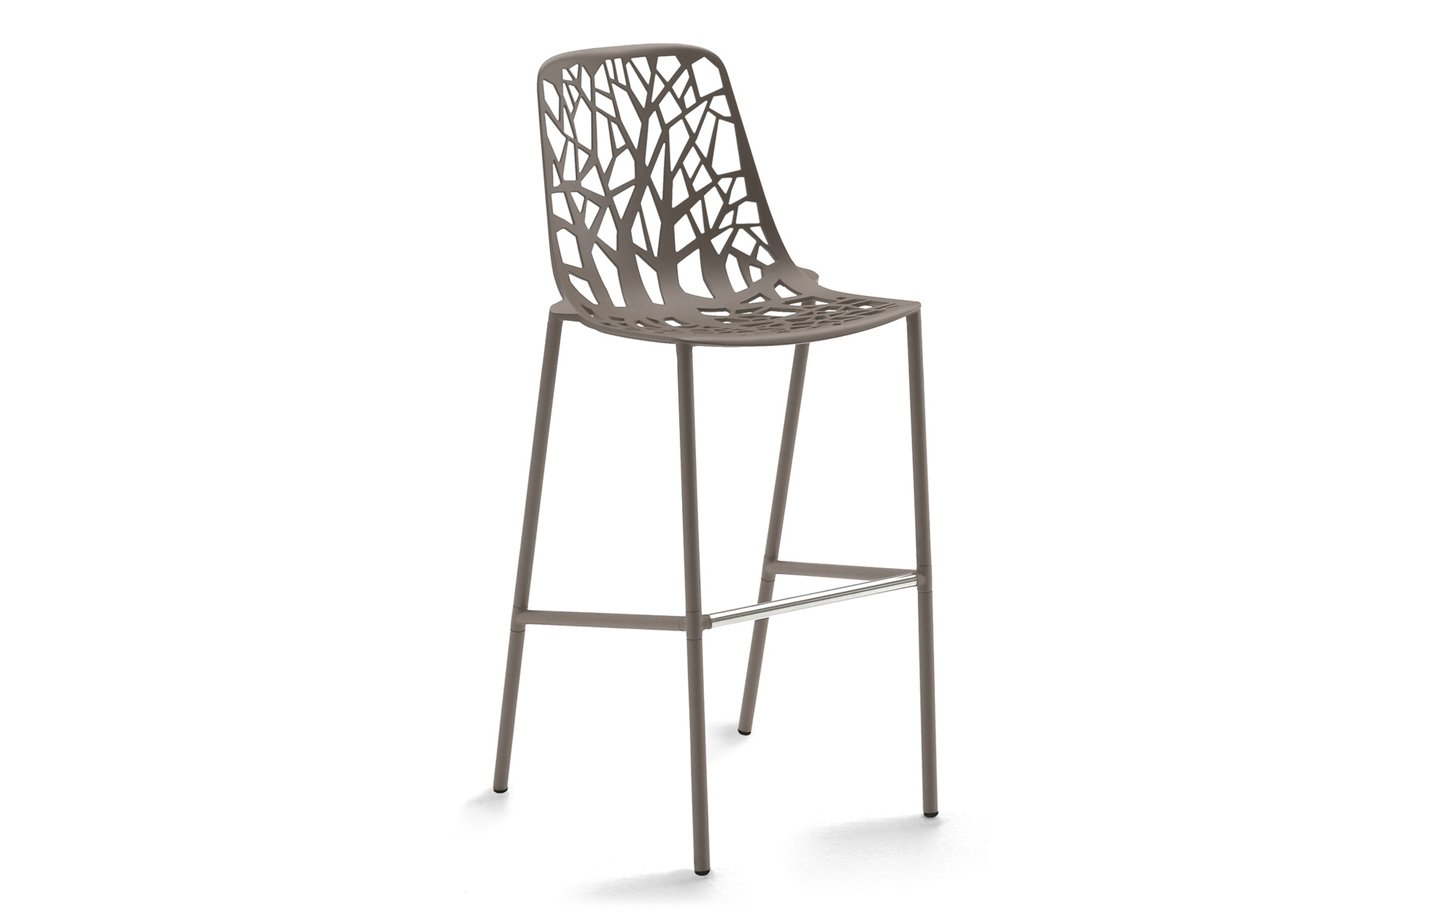 Forest bar stool fabiia dubai uae - Adorable iconic furniture design adapts black and white color ...